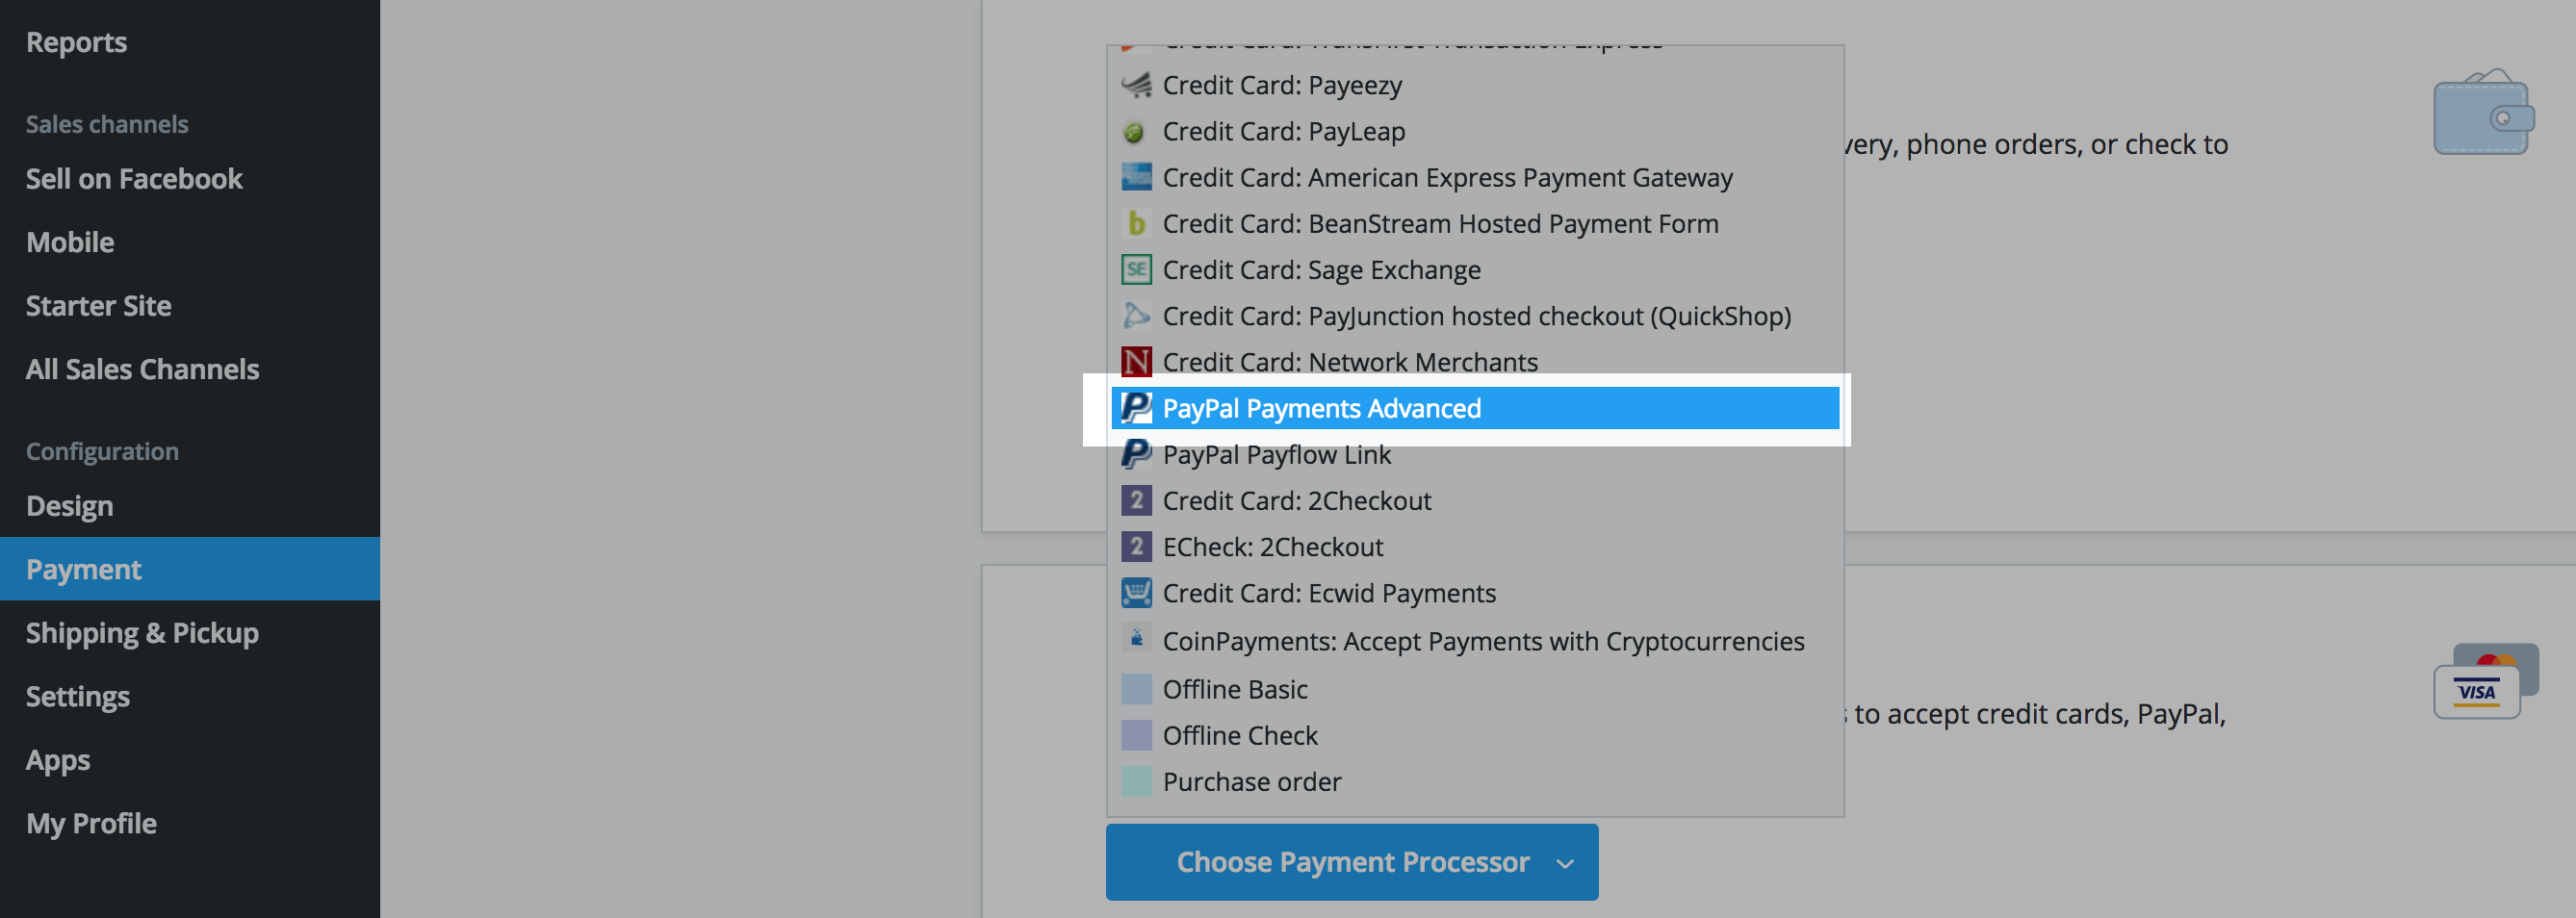 Setting up PayPal – Ecwid Help Center